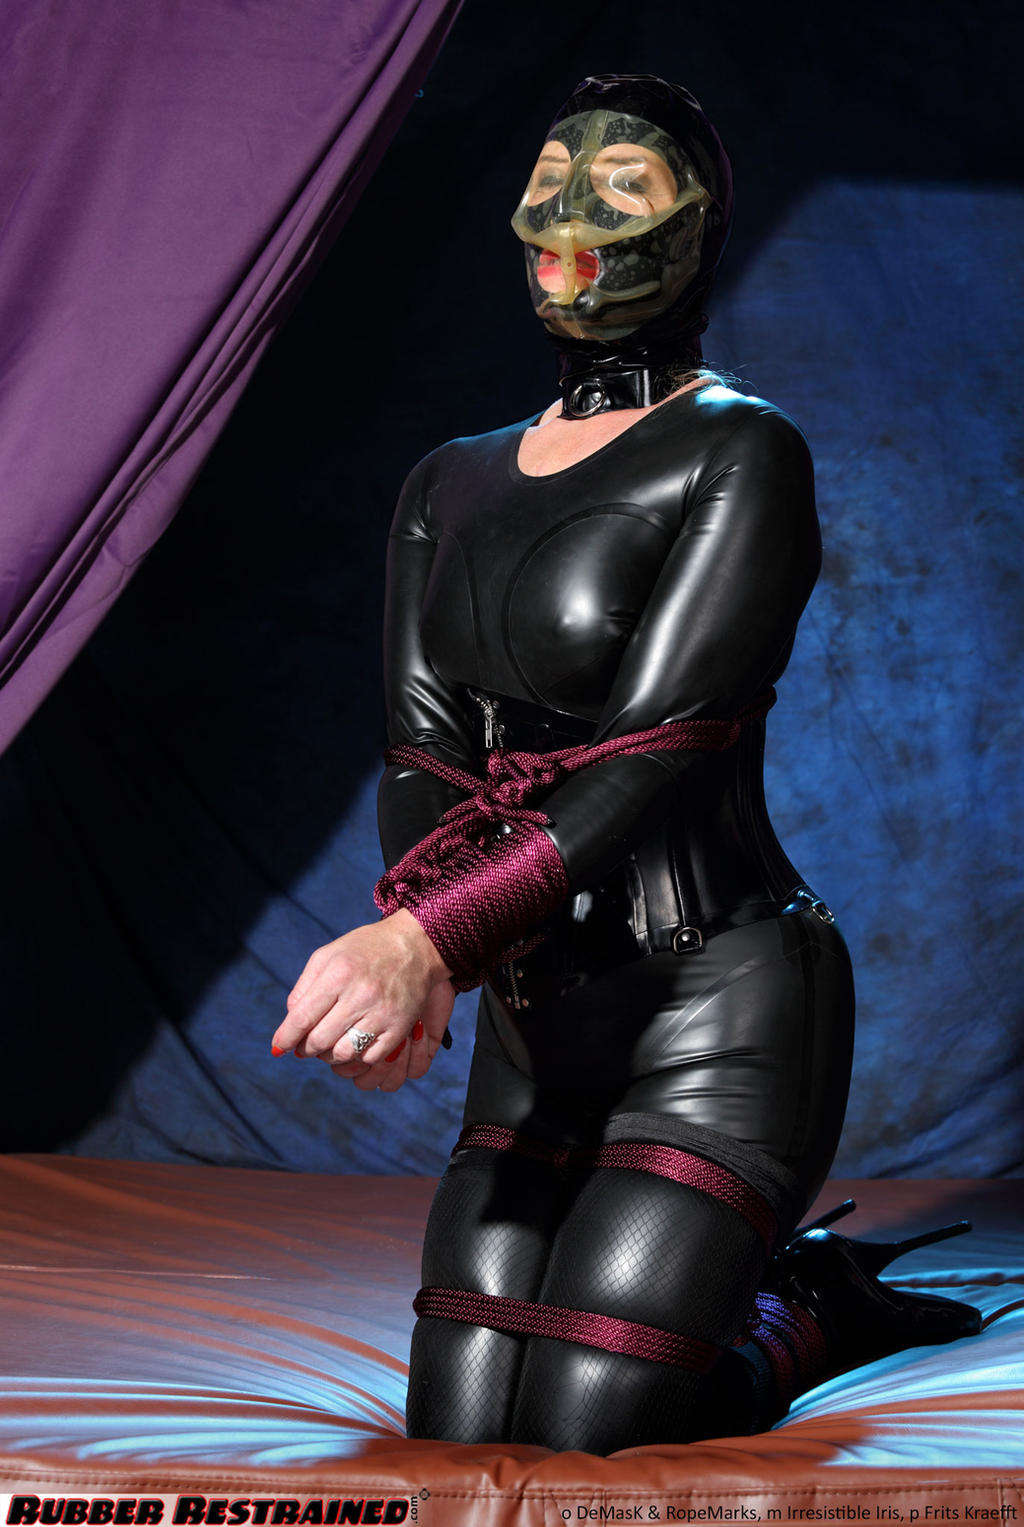 Rubber gagged